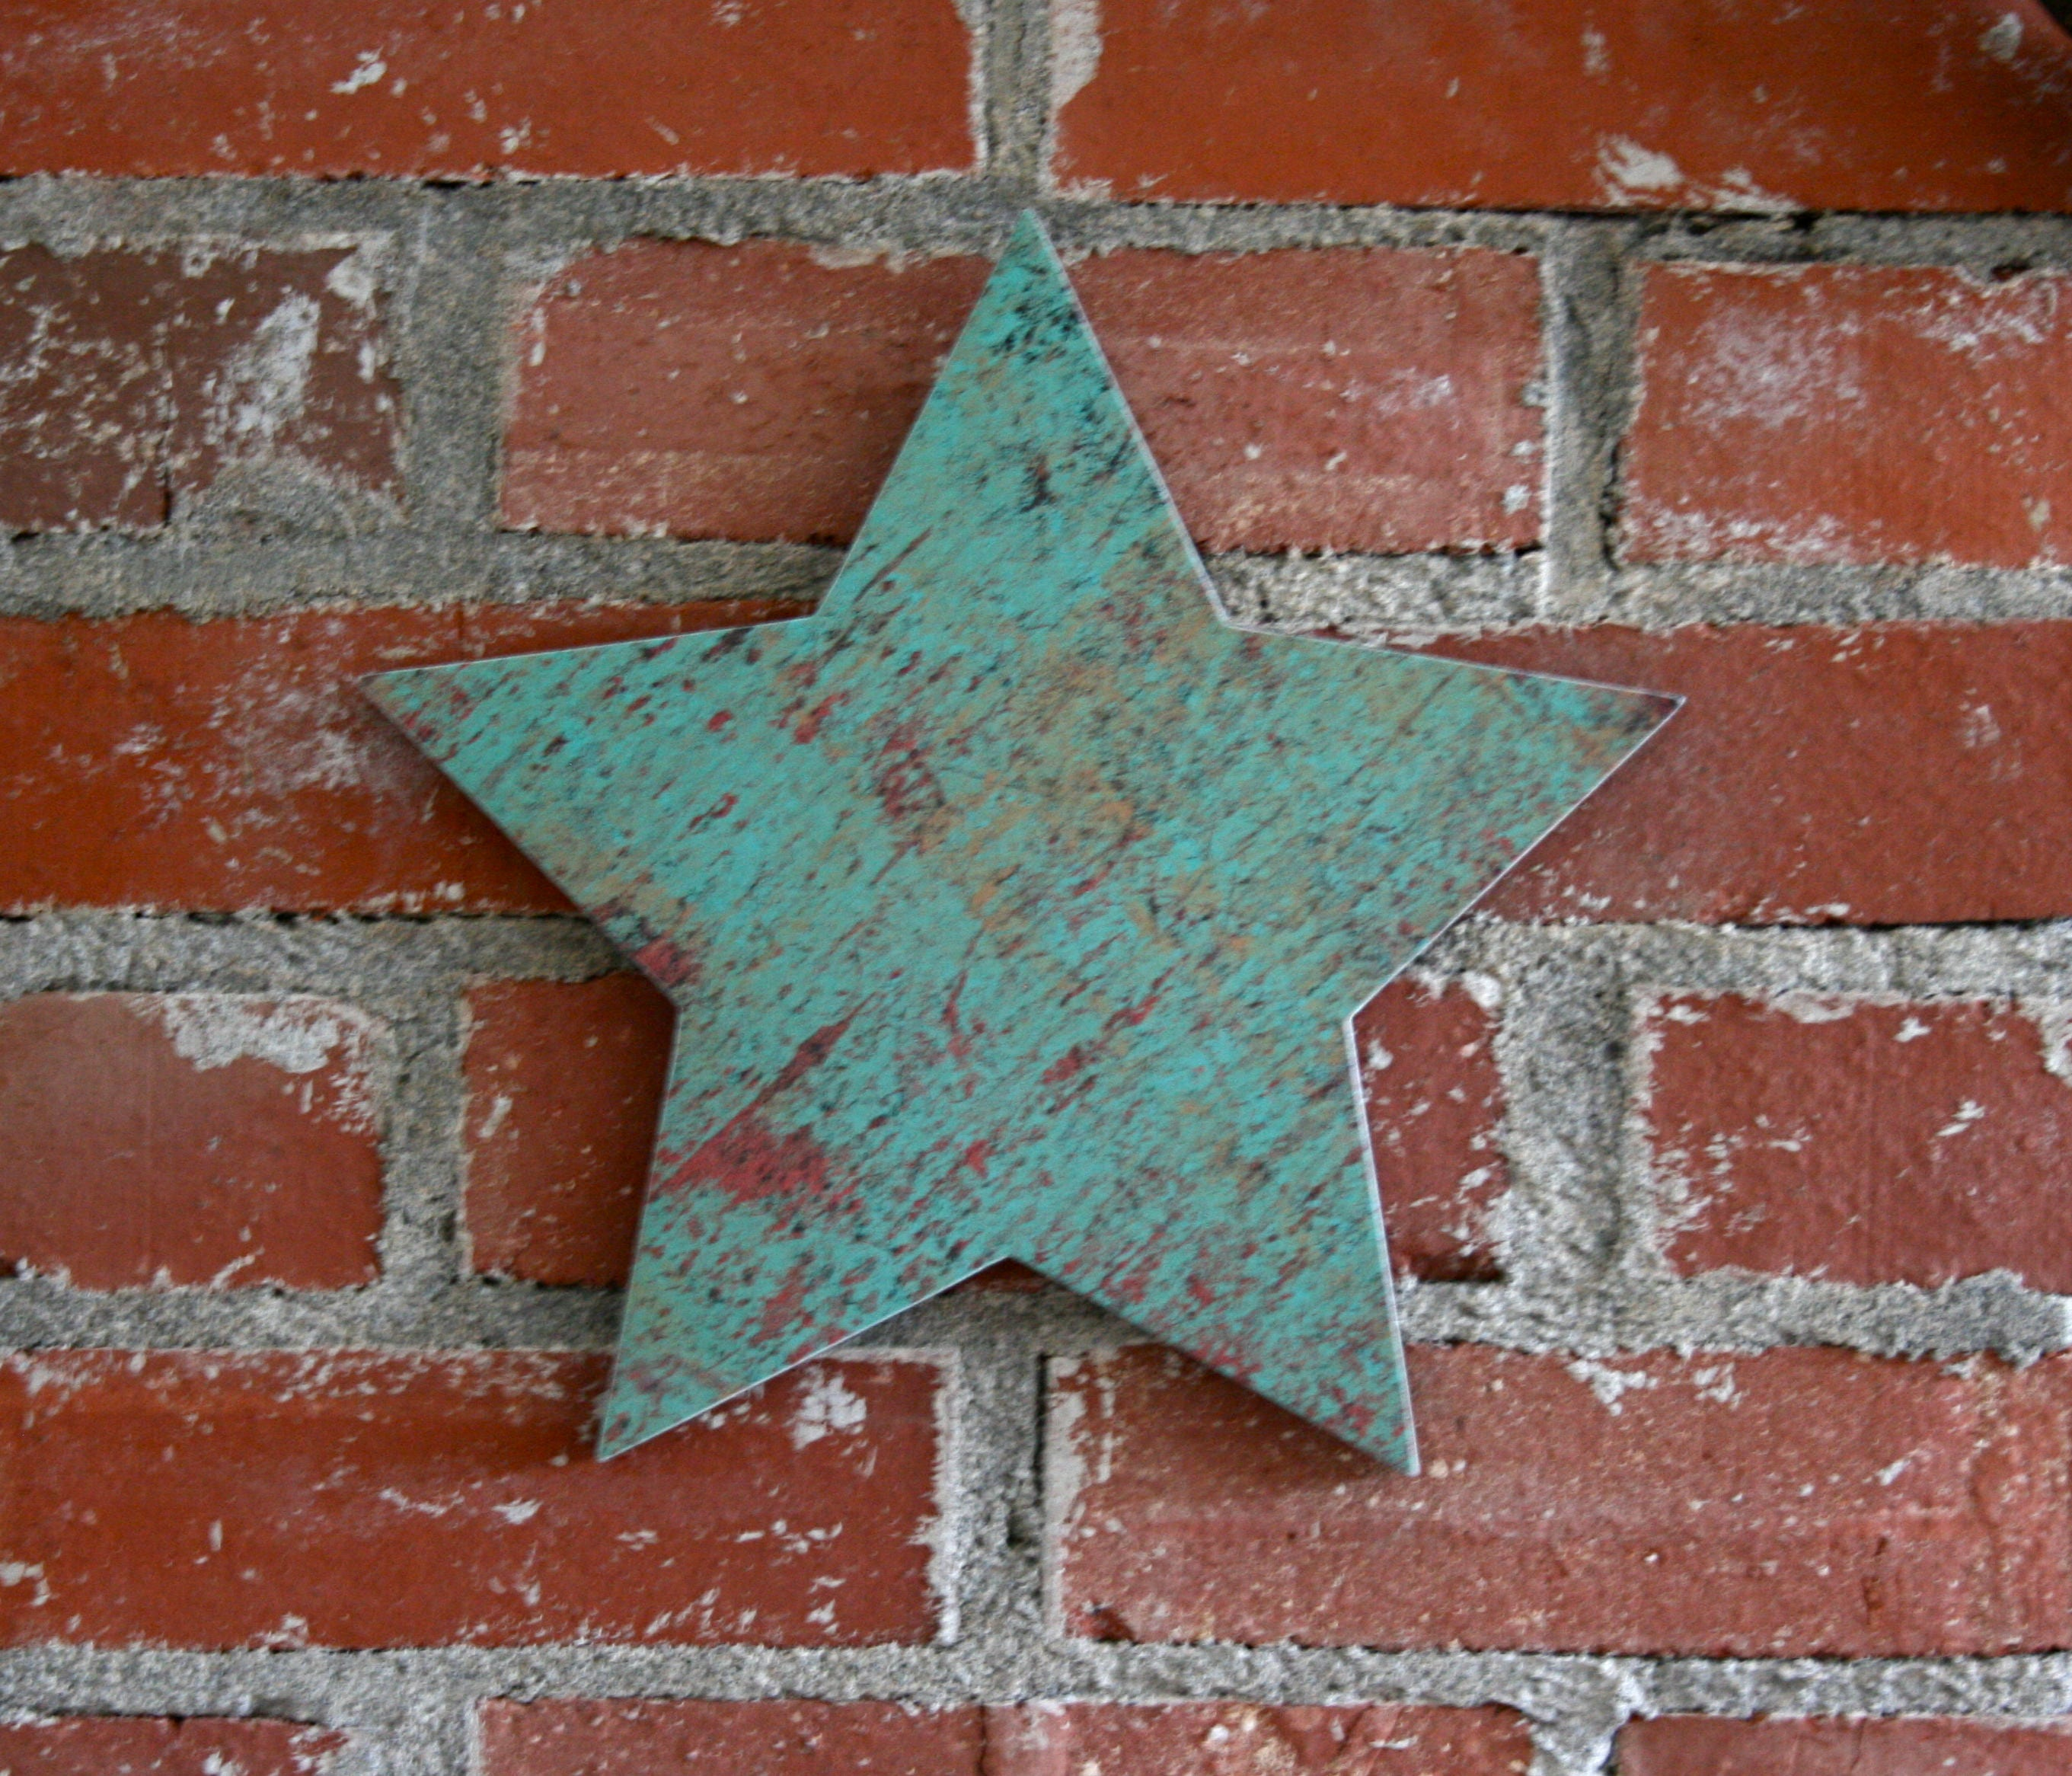 Rustic Star Wall Decor : Turquoise star wall decor rustic barn